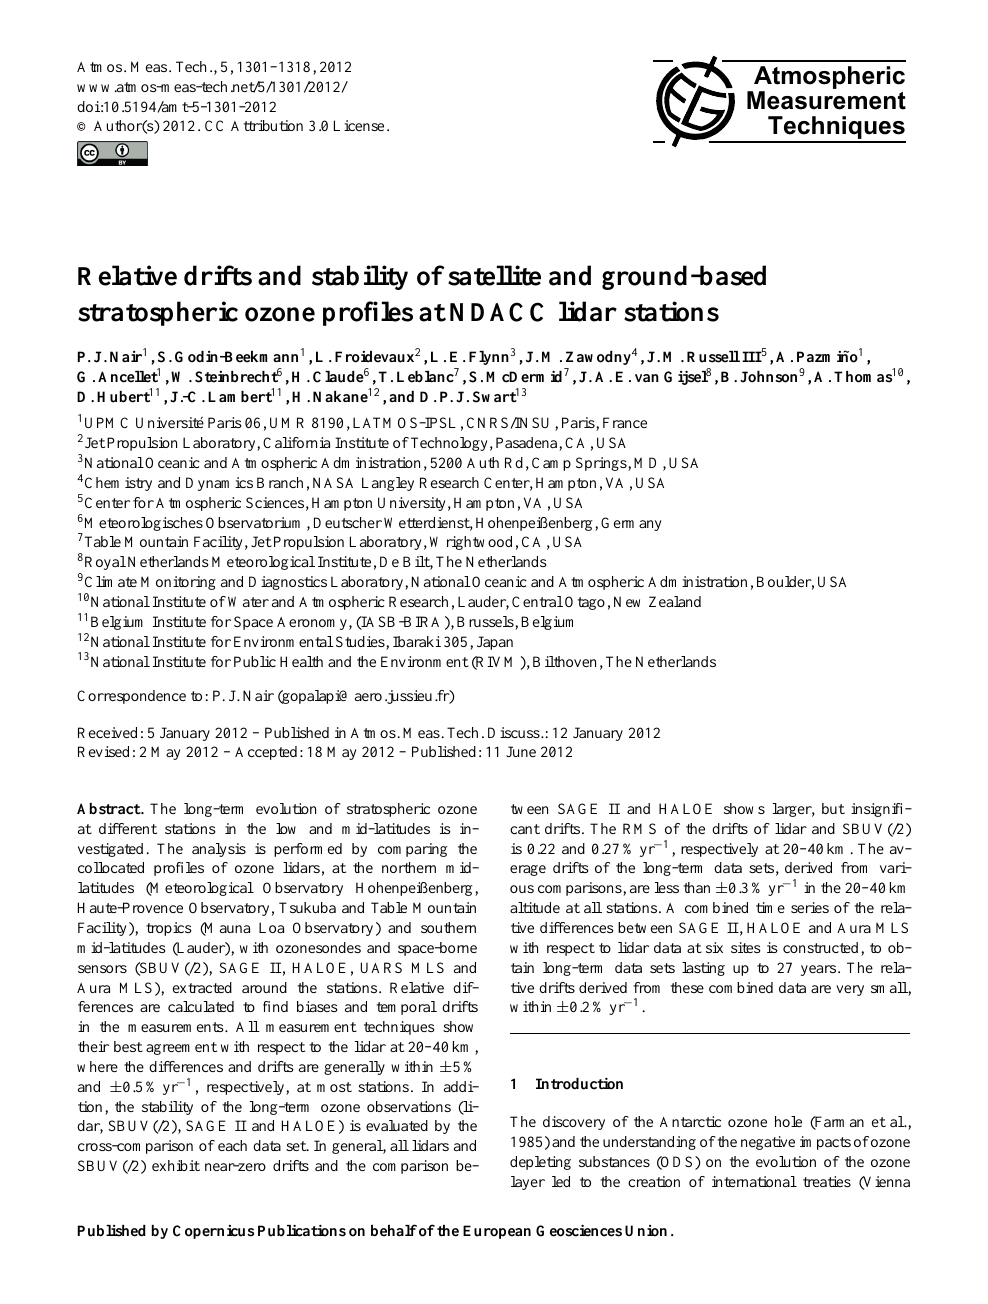 Relative drifts and stability of satellite and ground-based stratospheric  ozone profiles at NDACC lidar stations – topic of research paper in Earth  and related environmental sciences. Download scholarly article PDF and read